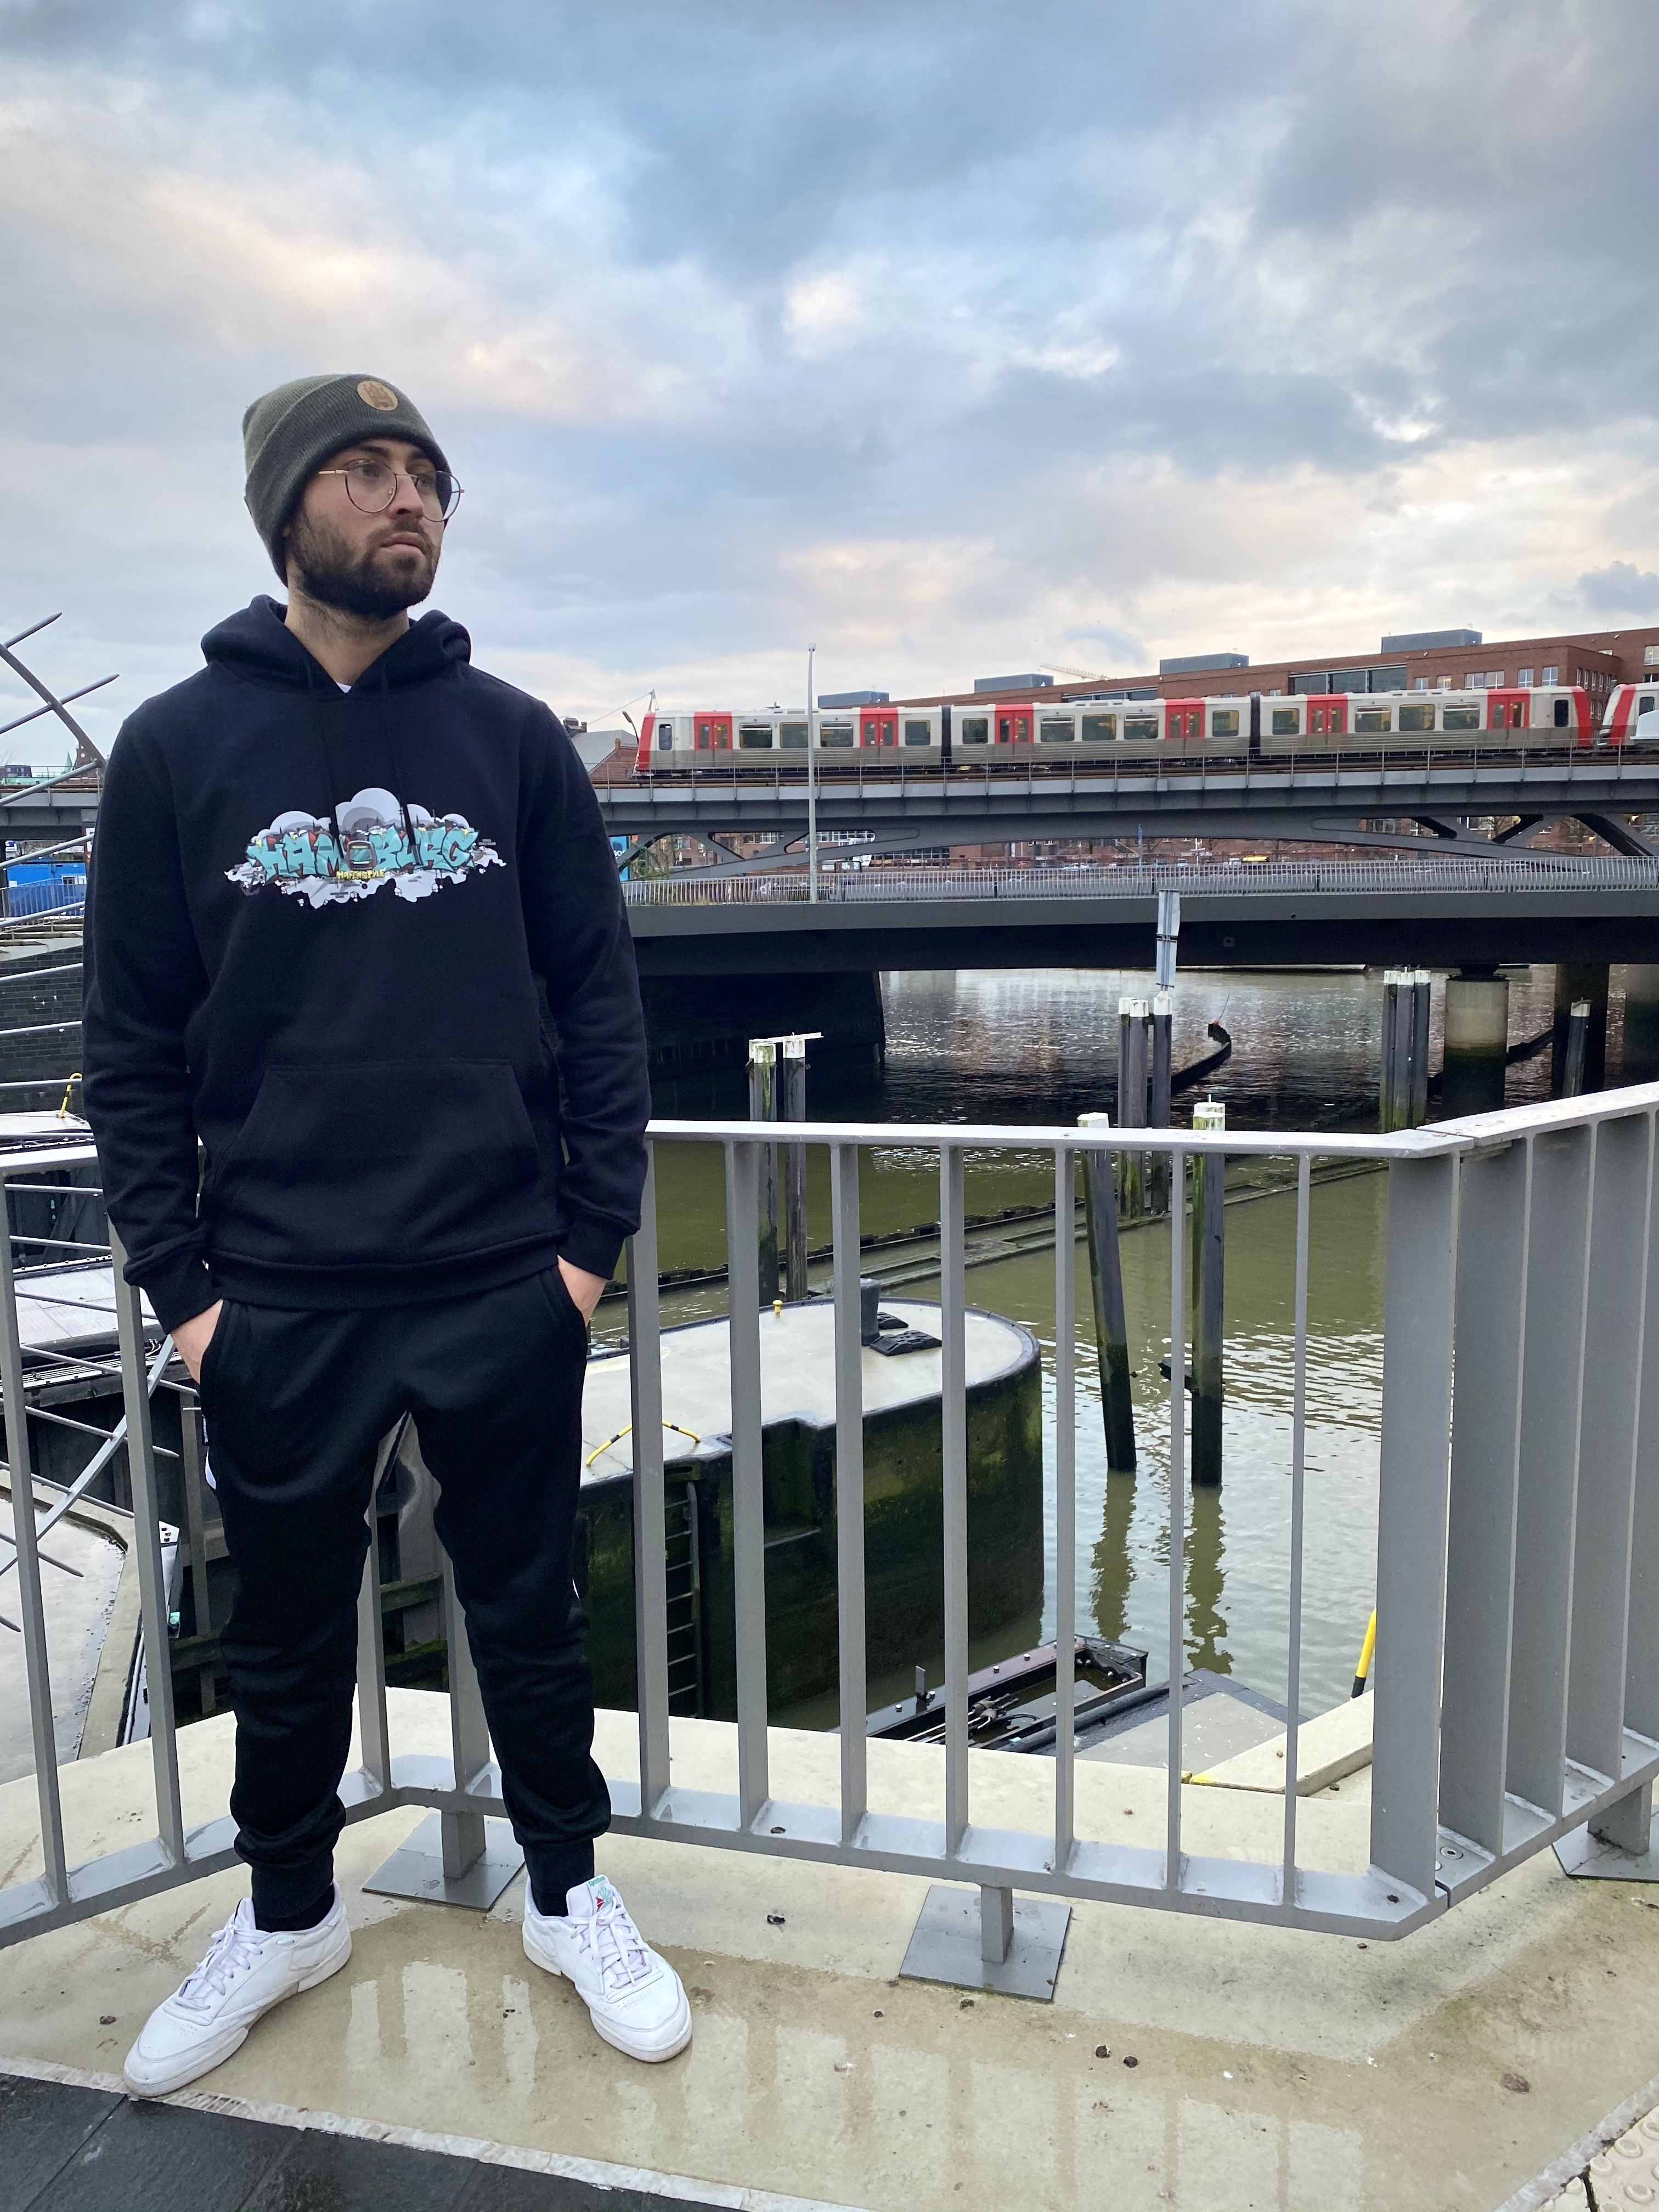 Hafenstyle_Streetwear_Hamburg_Subway_4_Billstedt_Hoodie_black_00001